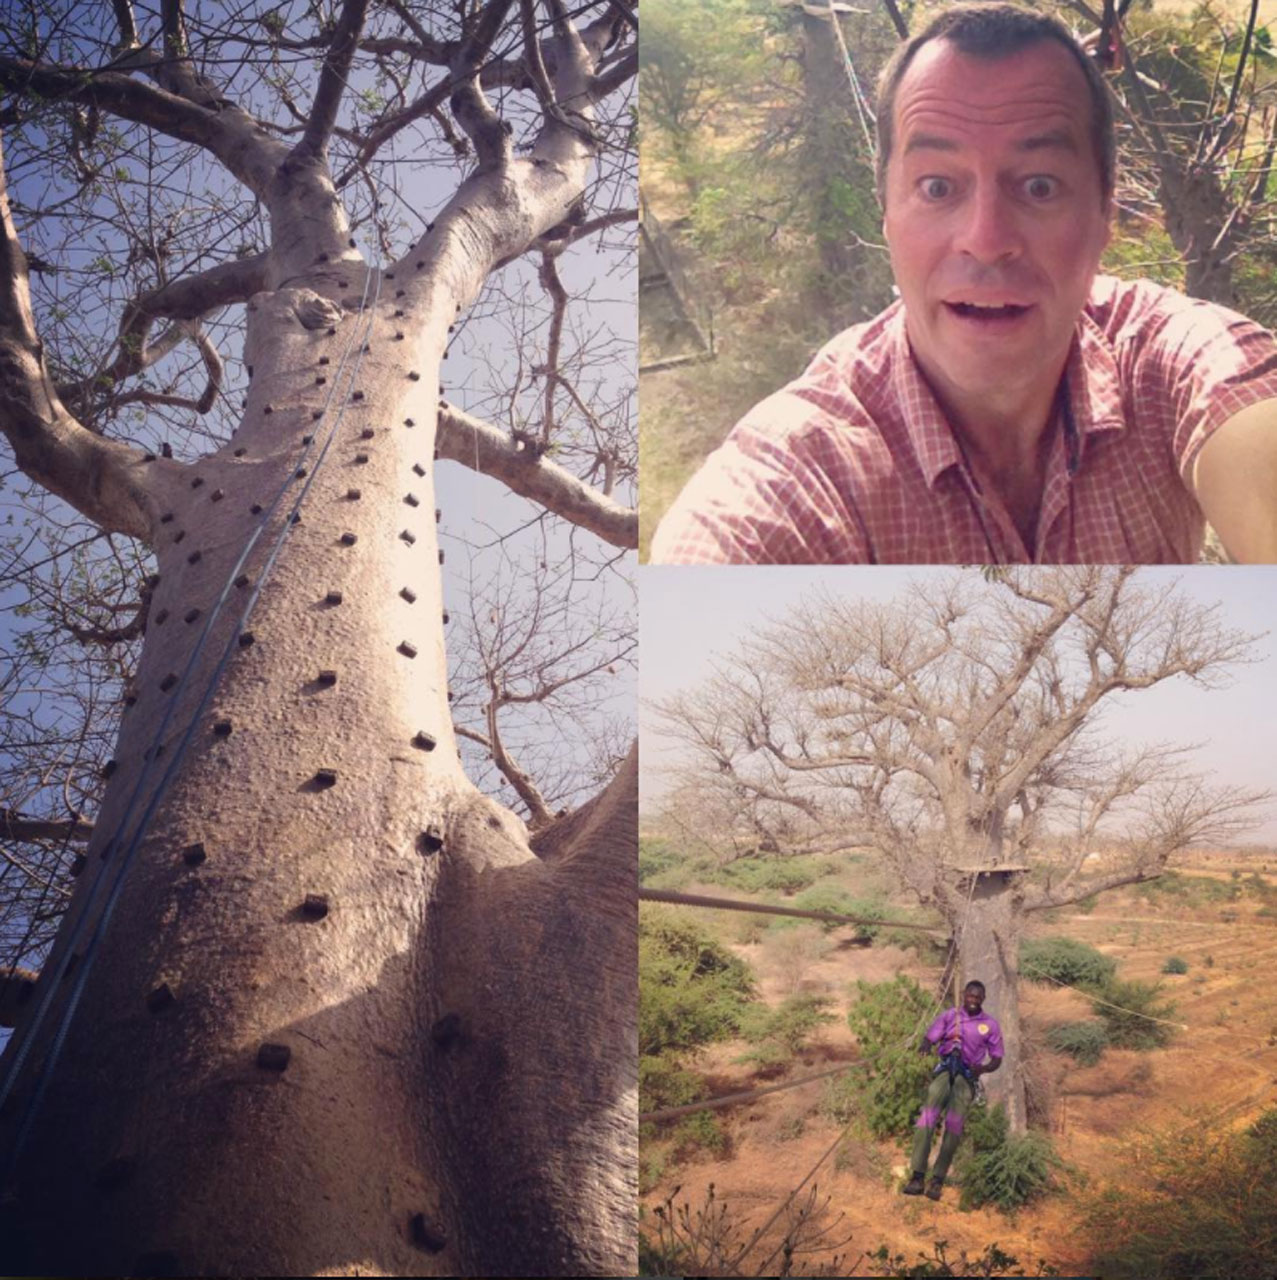 @simon.fenton.92I 'made it to the top' Accrobaobab, Senegal - posted by Simon on his Instagram page 26/5/2017@simon.fenton.92I 'made it to the top' Accrobaobab, Senegal - posted by Simon on his Instagram page 26/5/2017